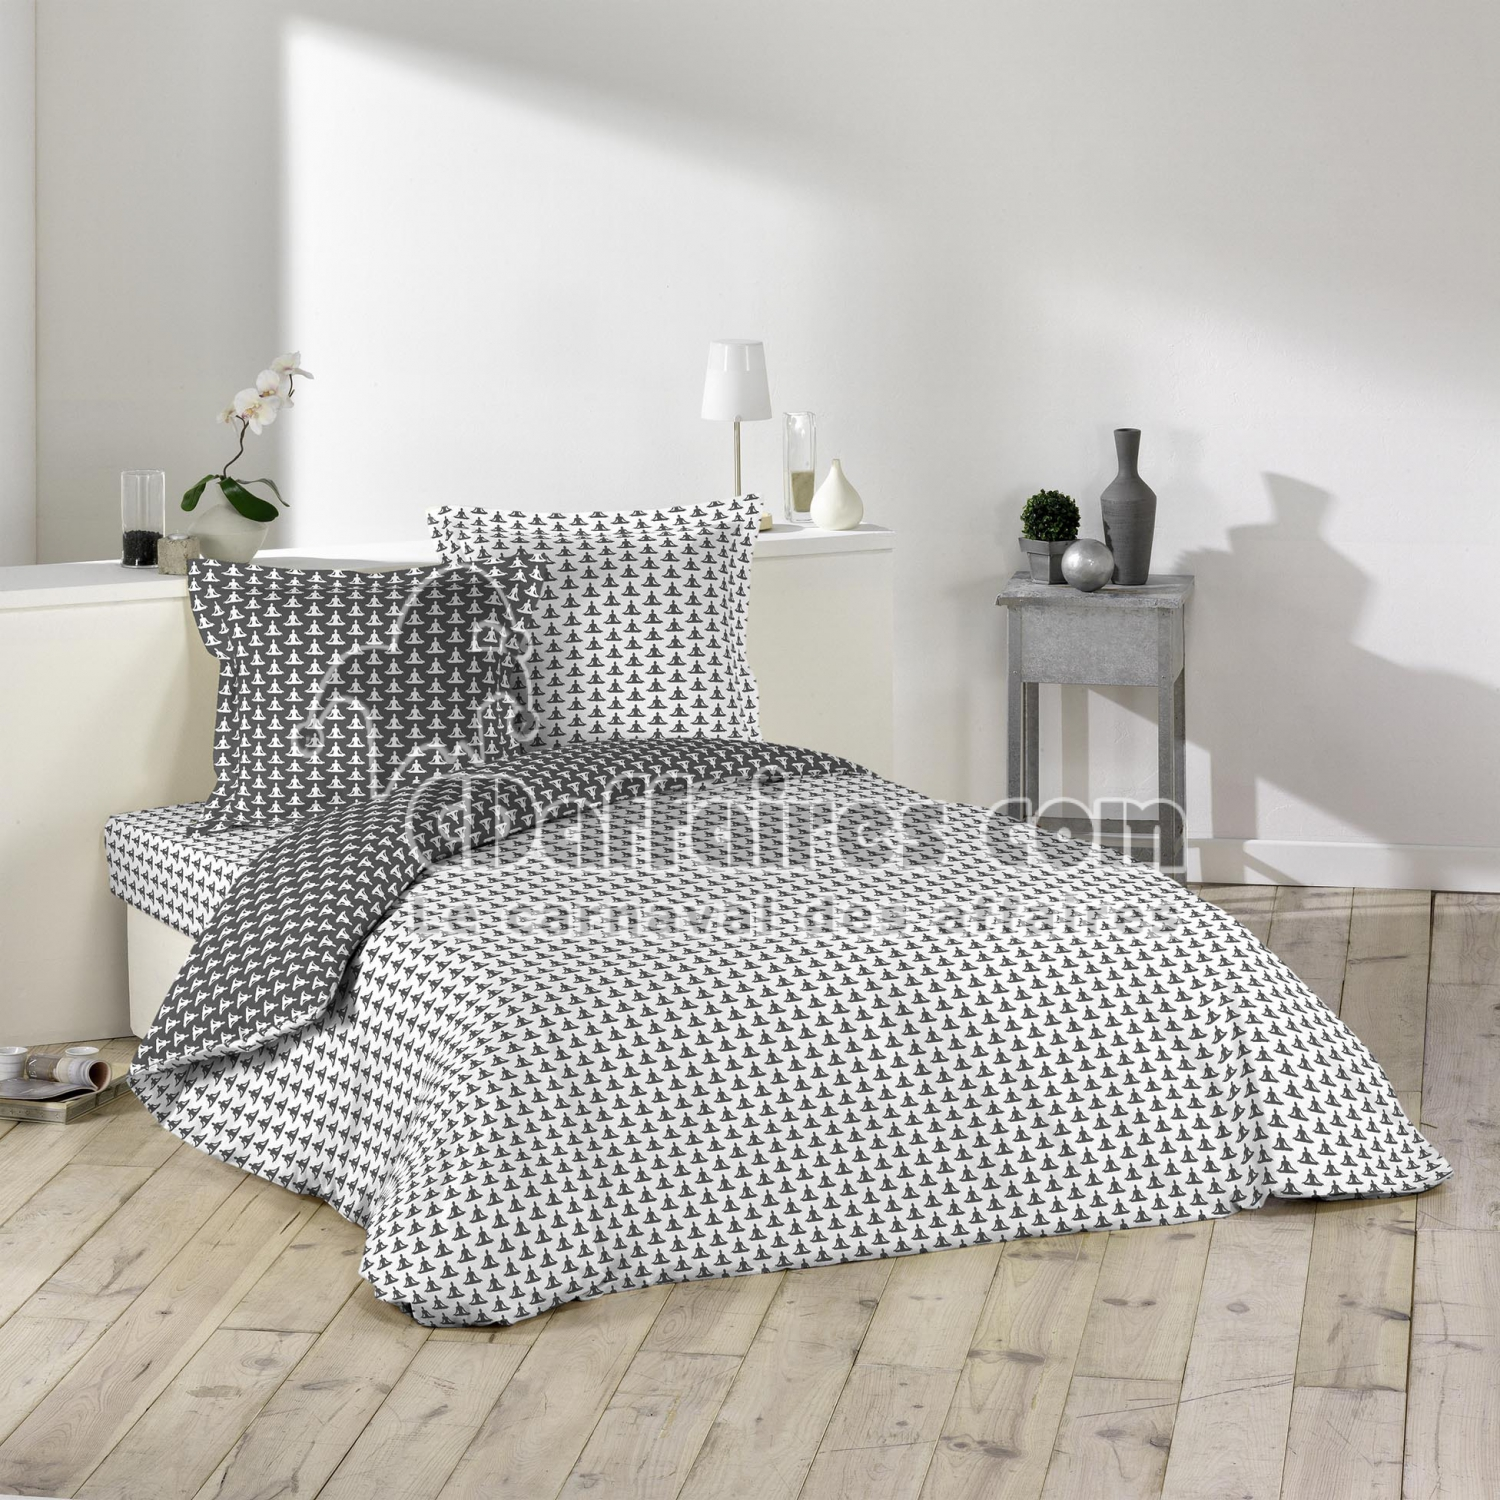 housse de couette 2 pers 240 x 220 cm imp 57 fils allover rev yoga blanc anth blanc anthracite. Black Bedroom Furniture Sets. Home Design Ideas